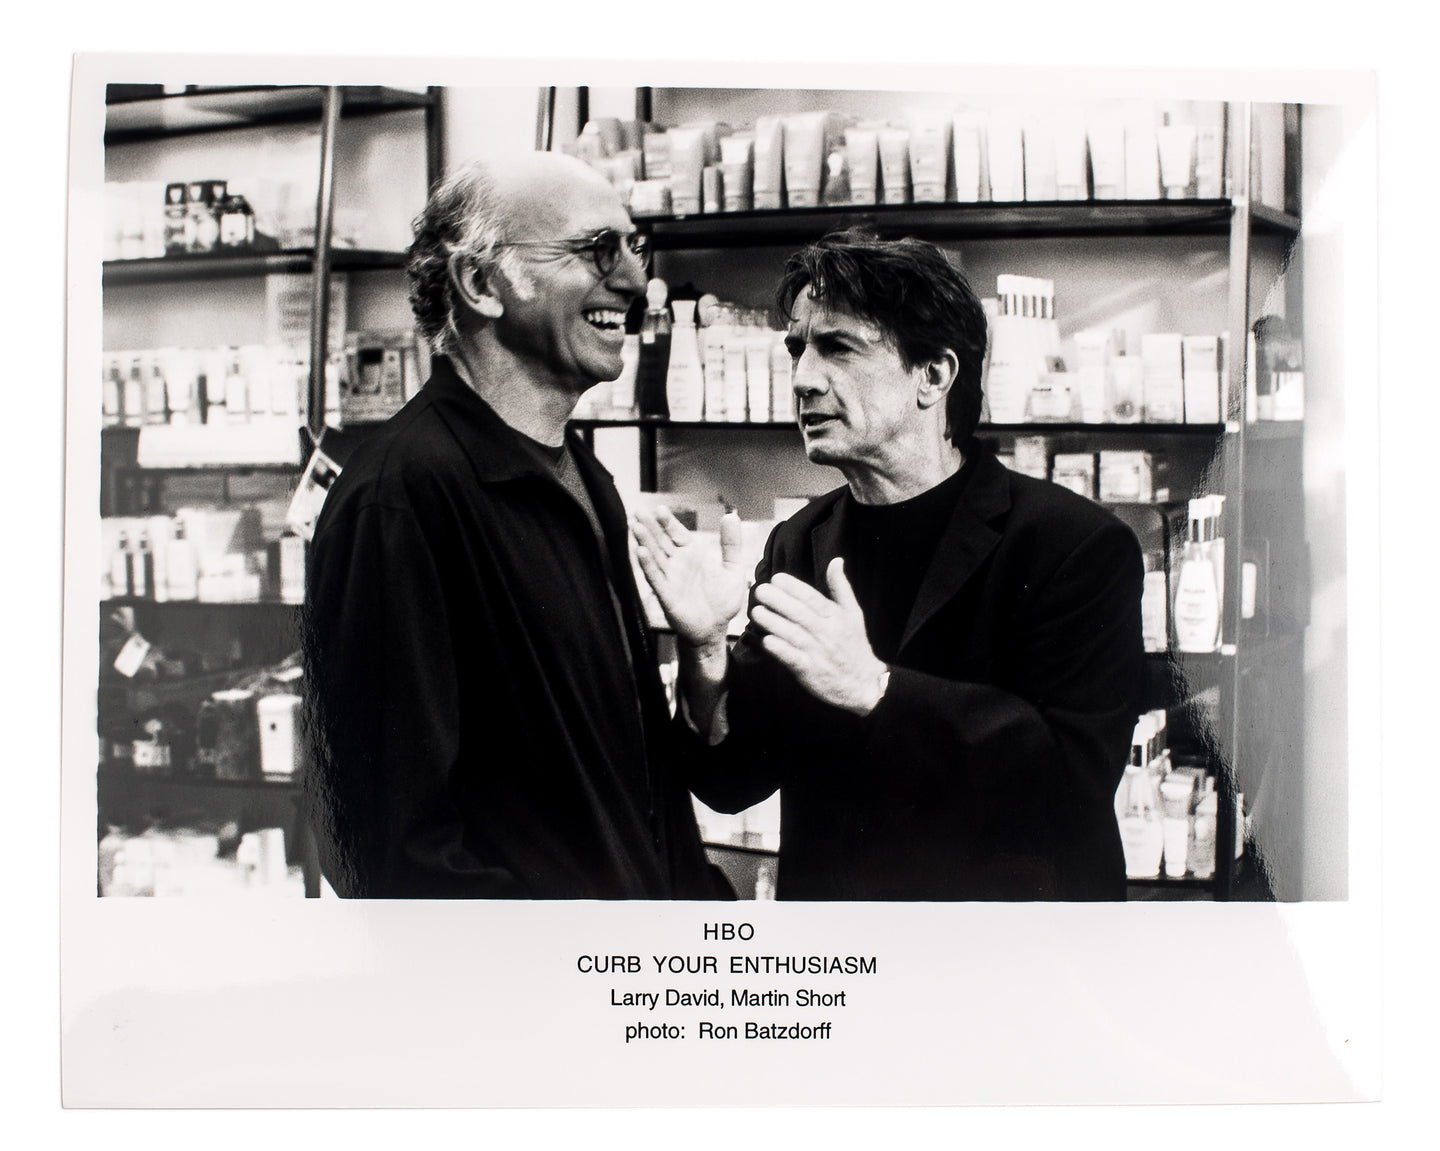 Curb Your Enthusiasm HBO Press Photo